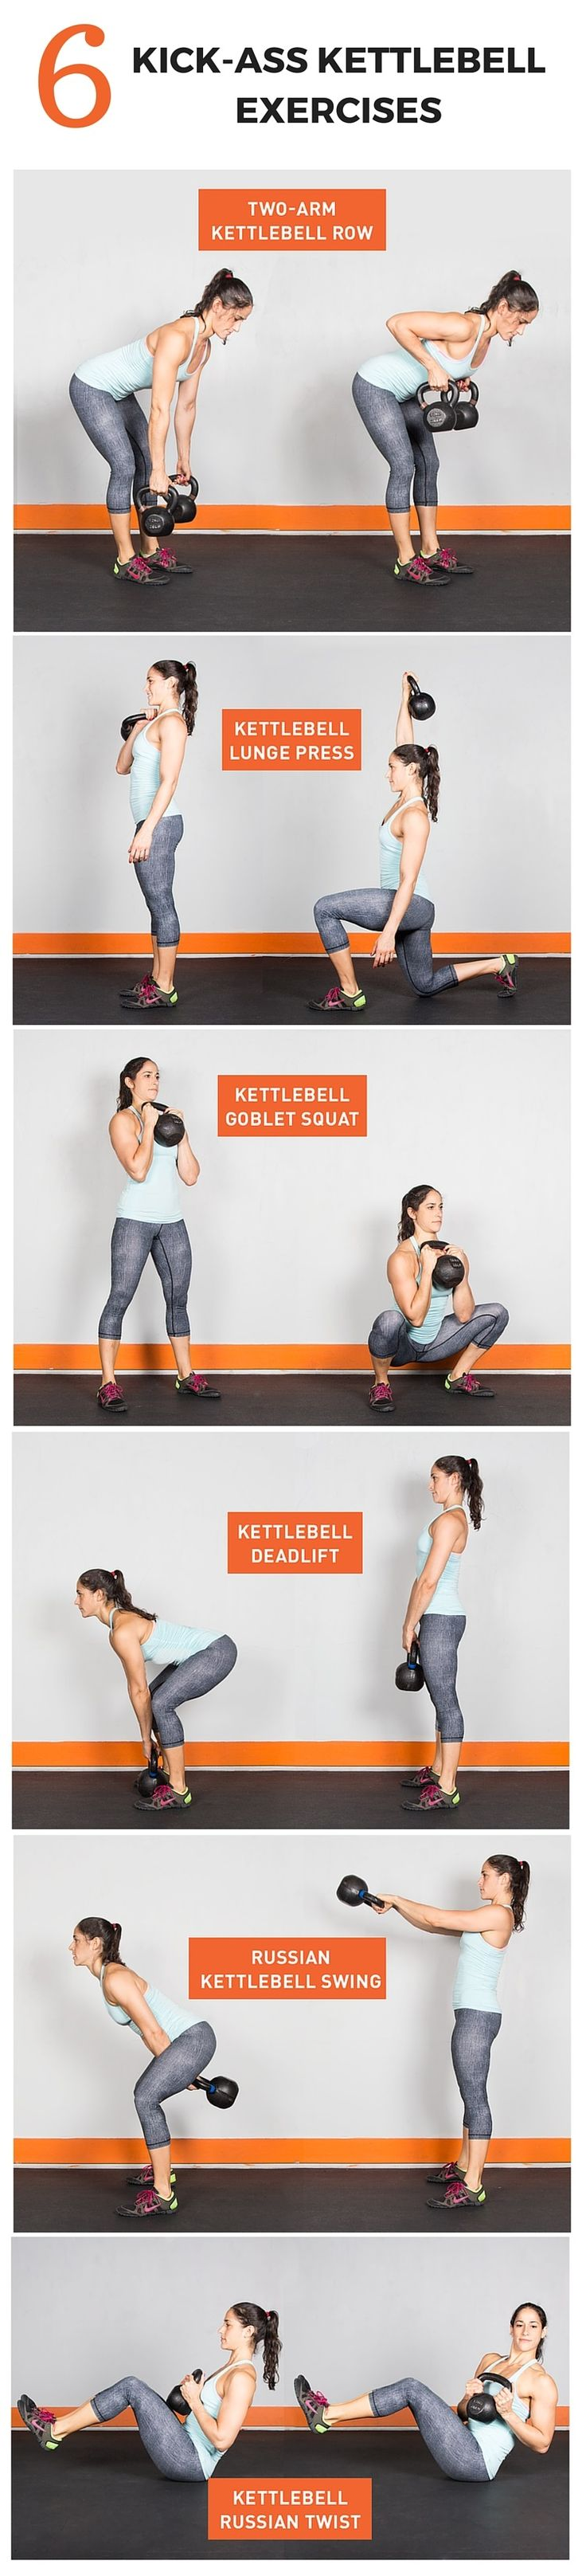 Kick-Ass Kettlebell Workout #KettlebellWorkout #fitness   Posted By: NewHowtoLoseBellyFat.com  